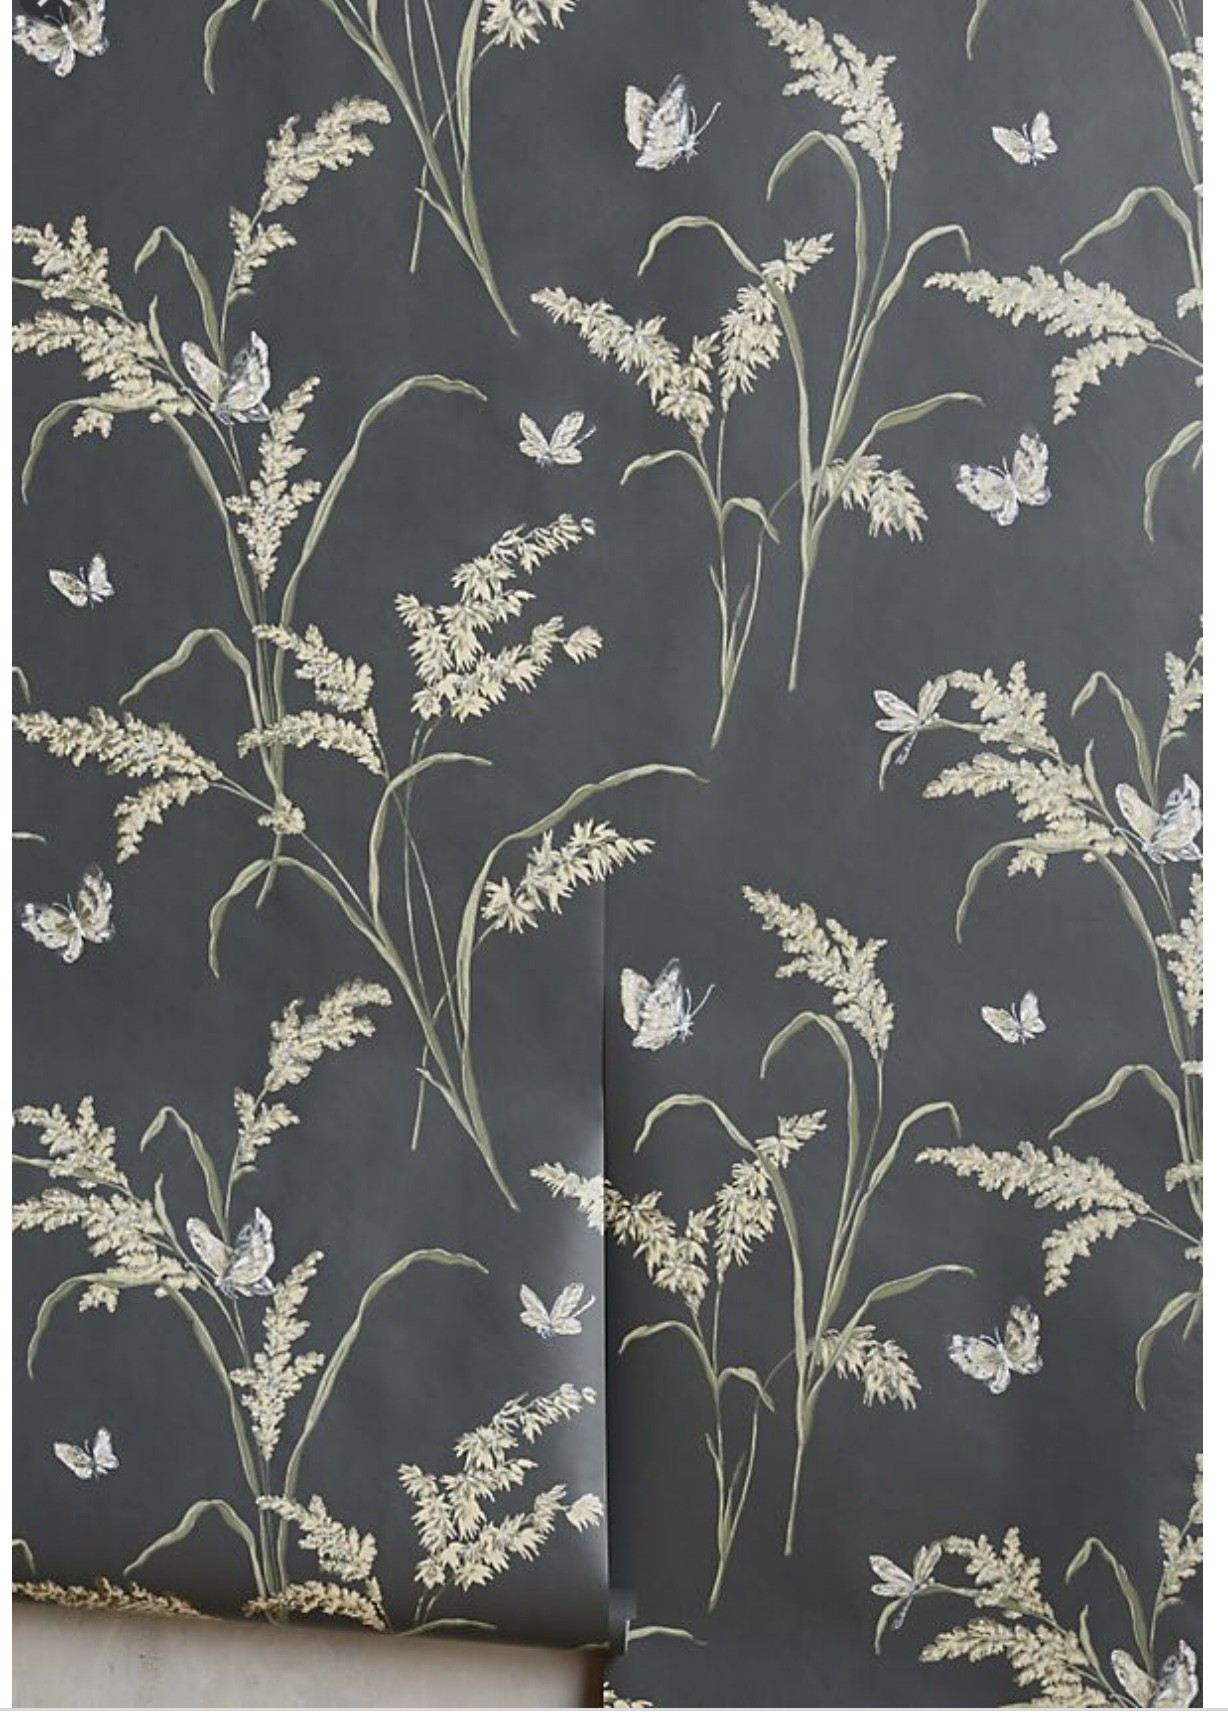 How To Stencil On Walls To Look Like Wallpaper Kriscross